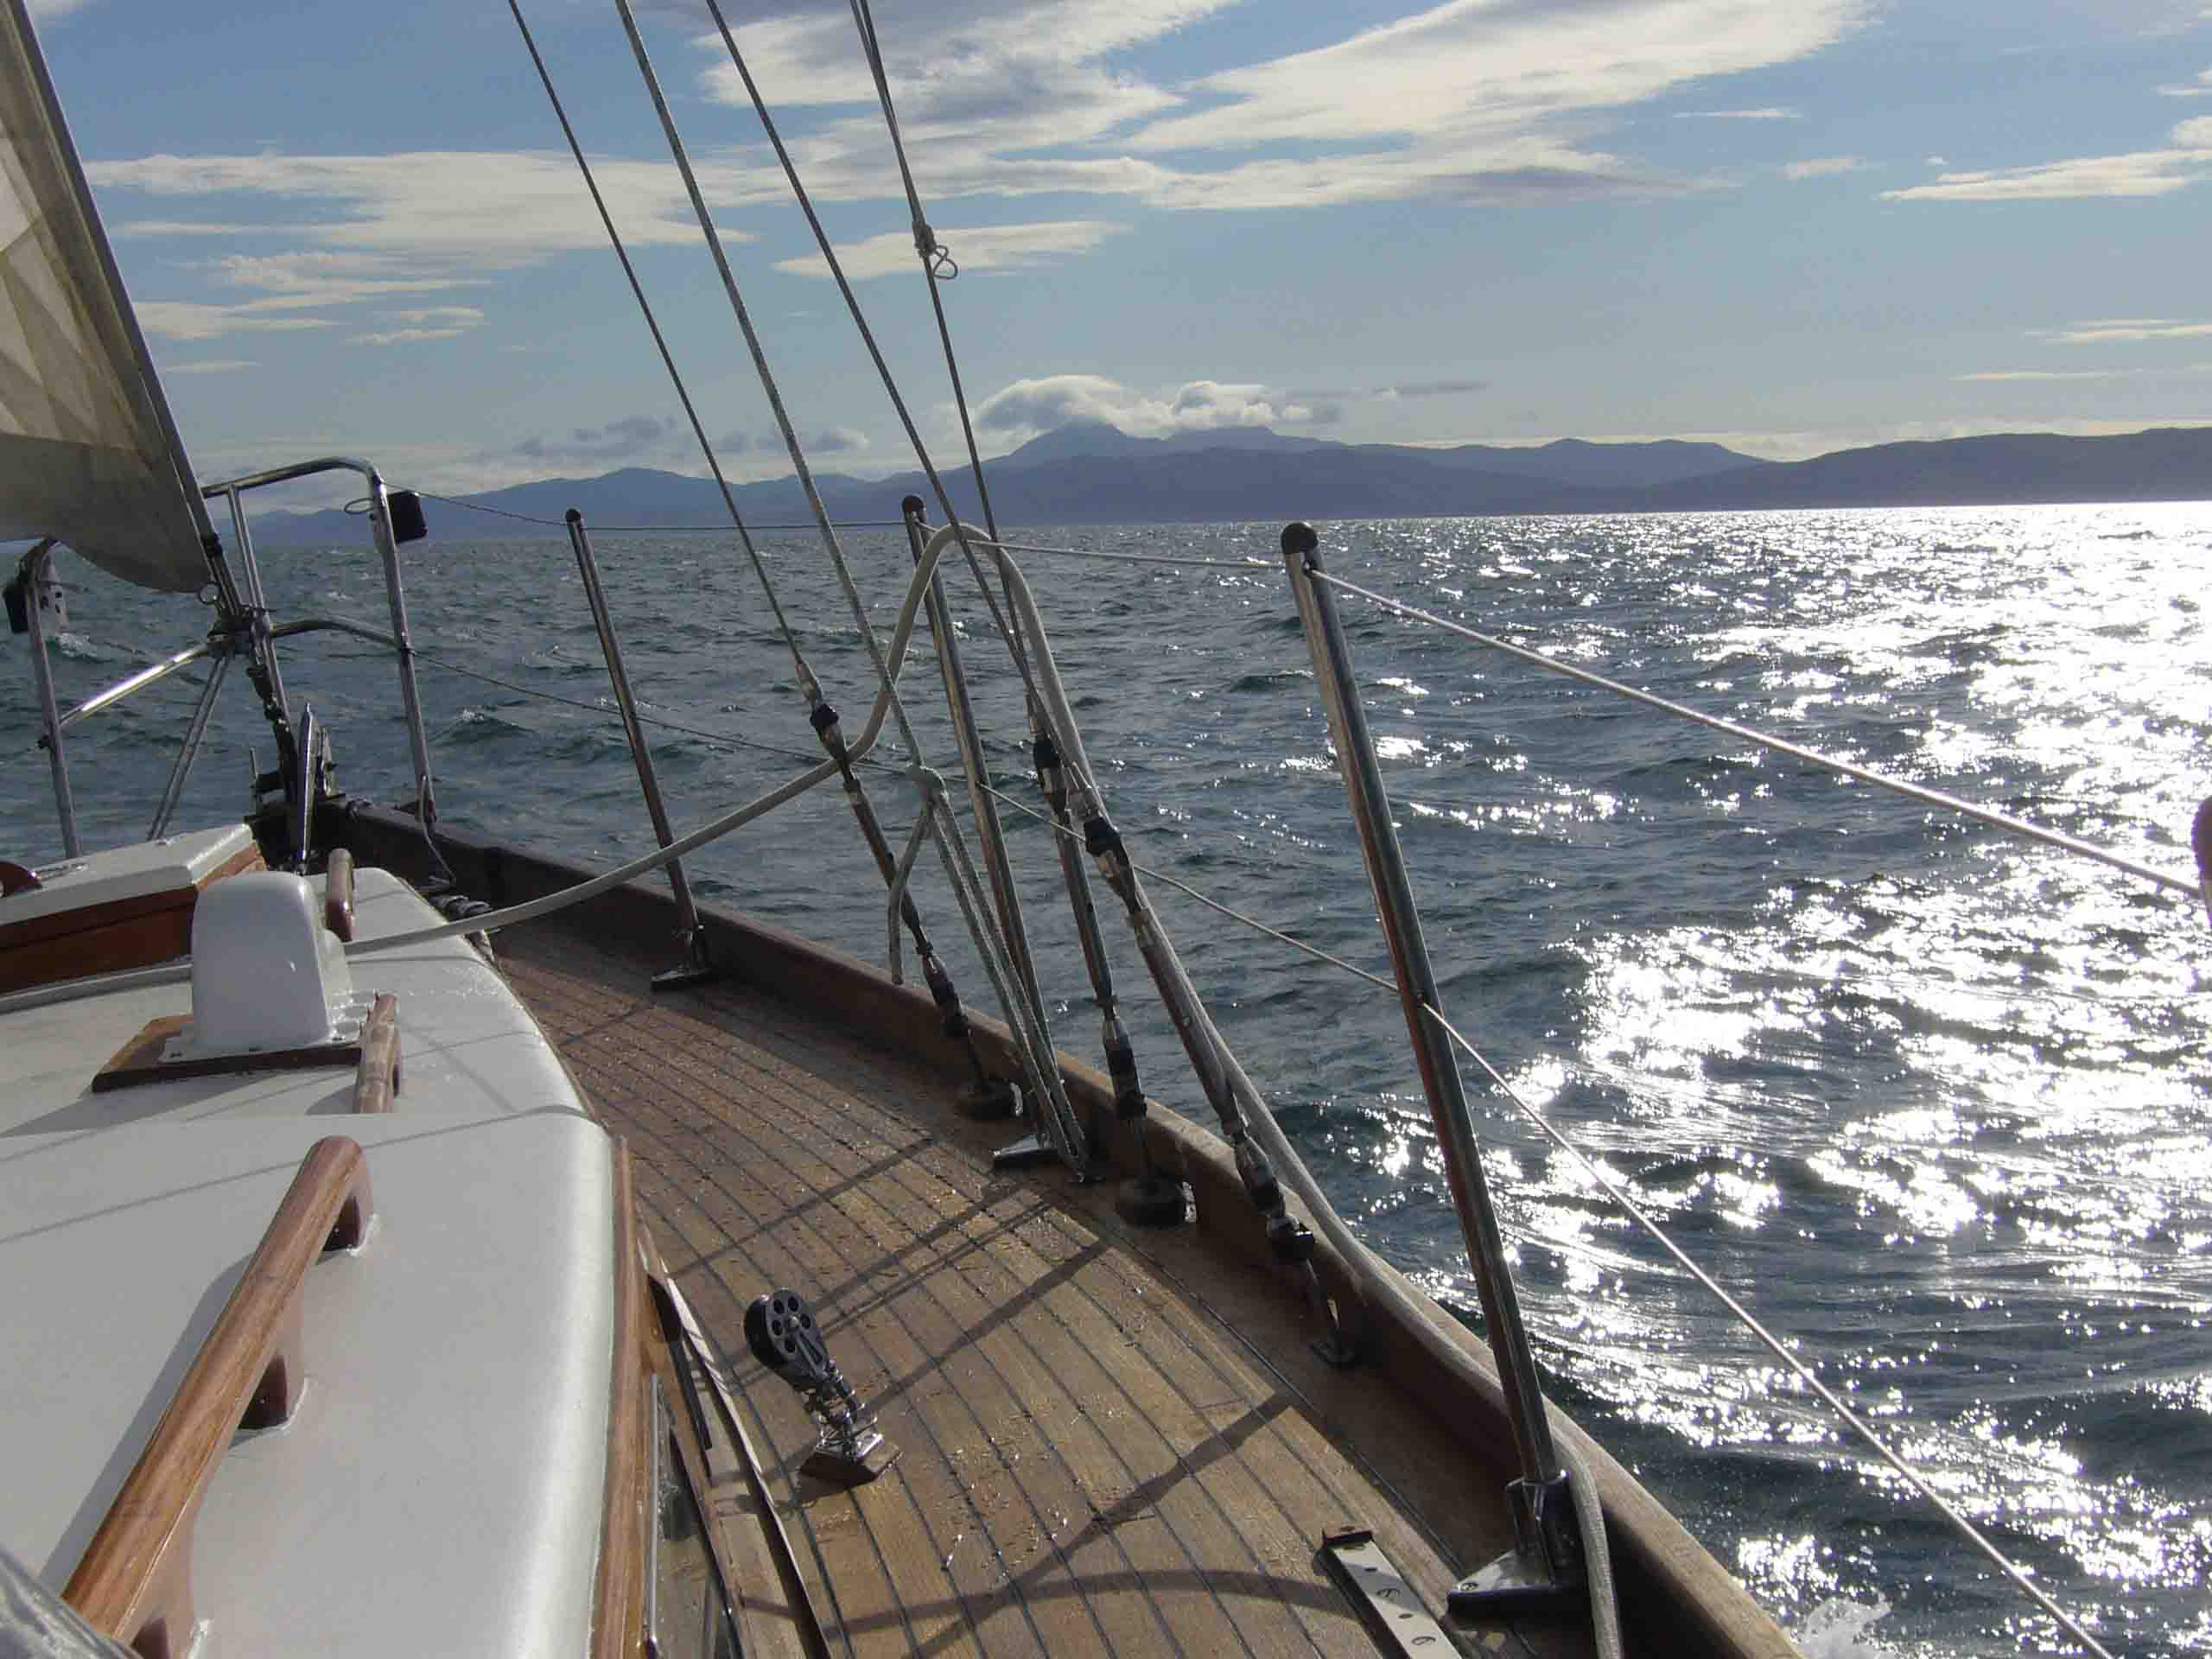 Malouine approaching Cape Wrath